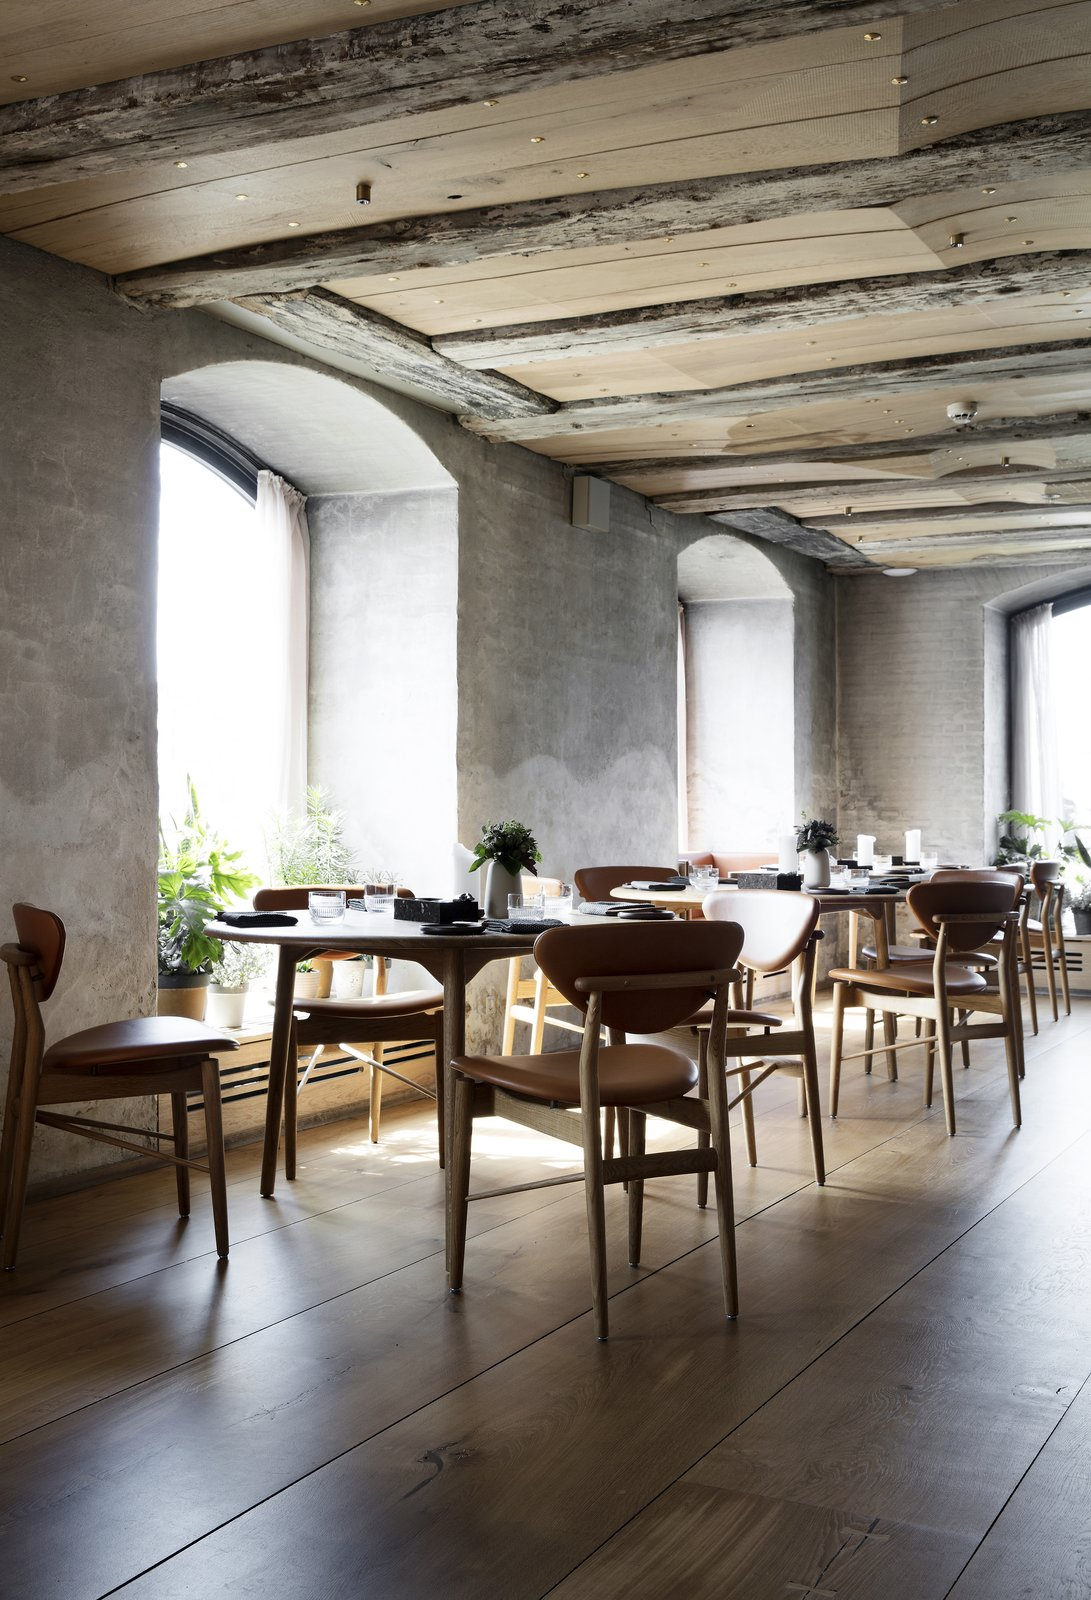 Photo 5 of 10 in Snøhetta Designs the Interiors of Barr, the Noma